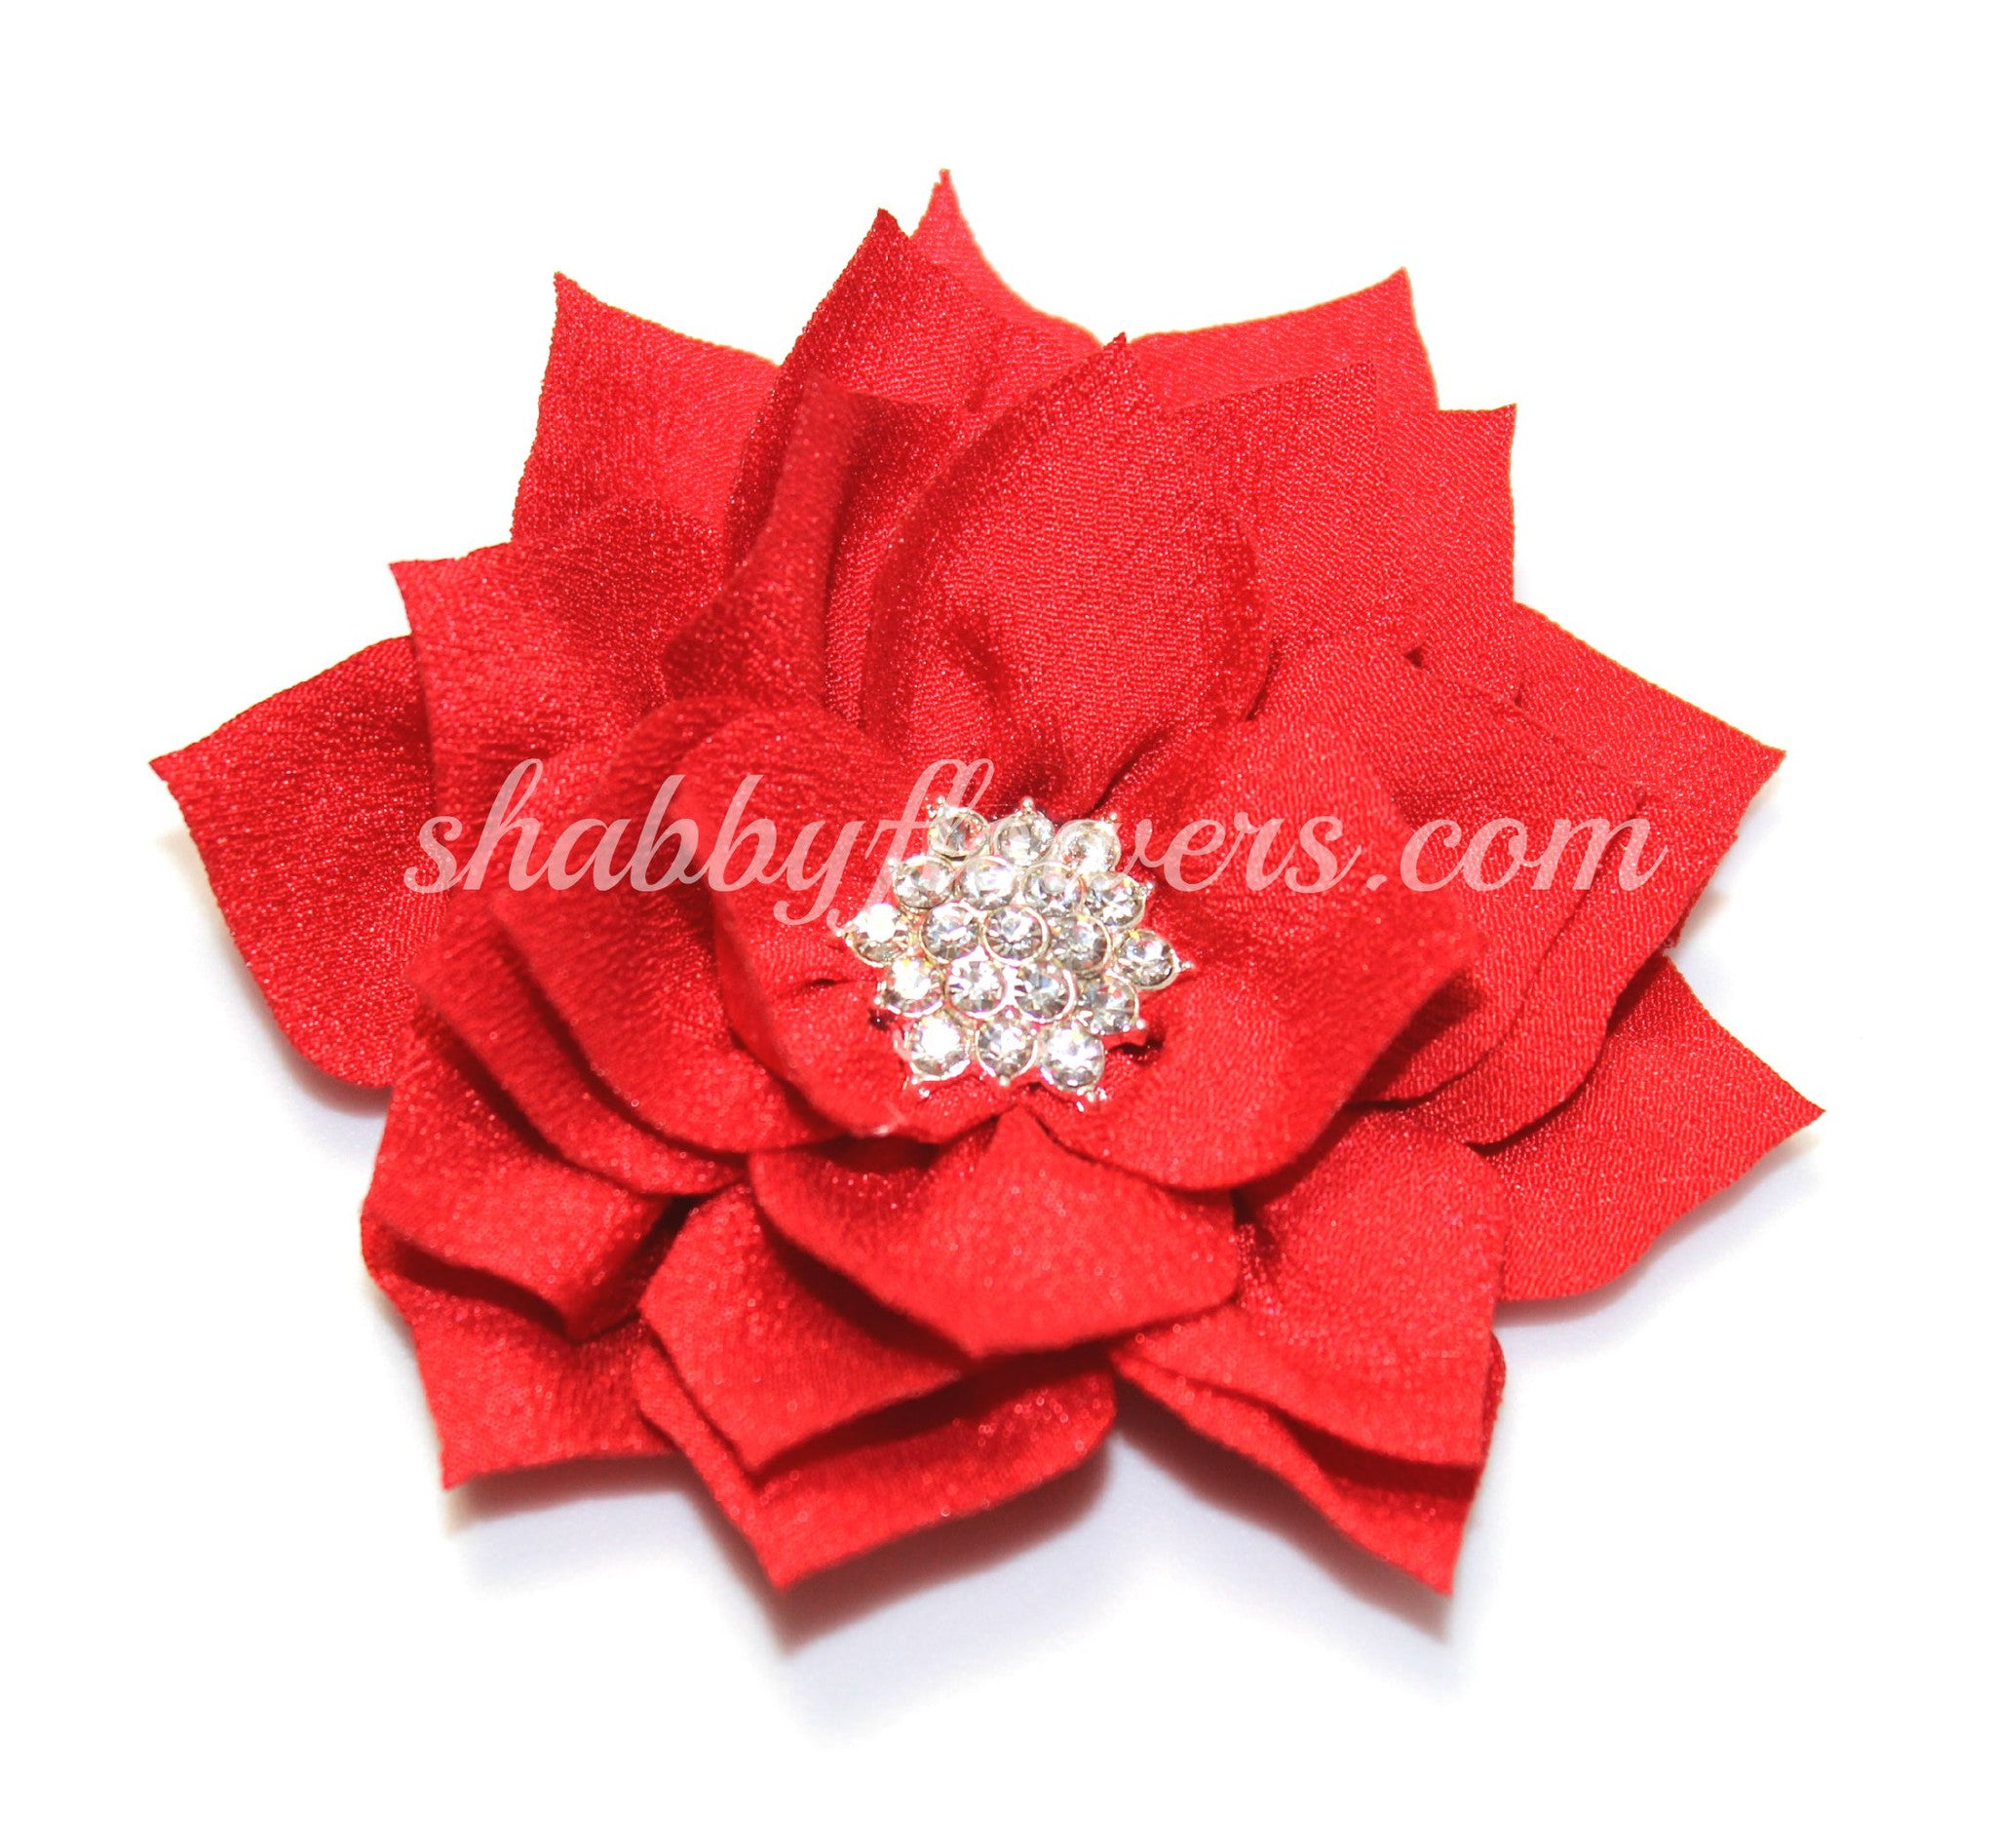 Lotus Rhinestone Flower - Red - shabbyflowers.com